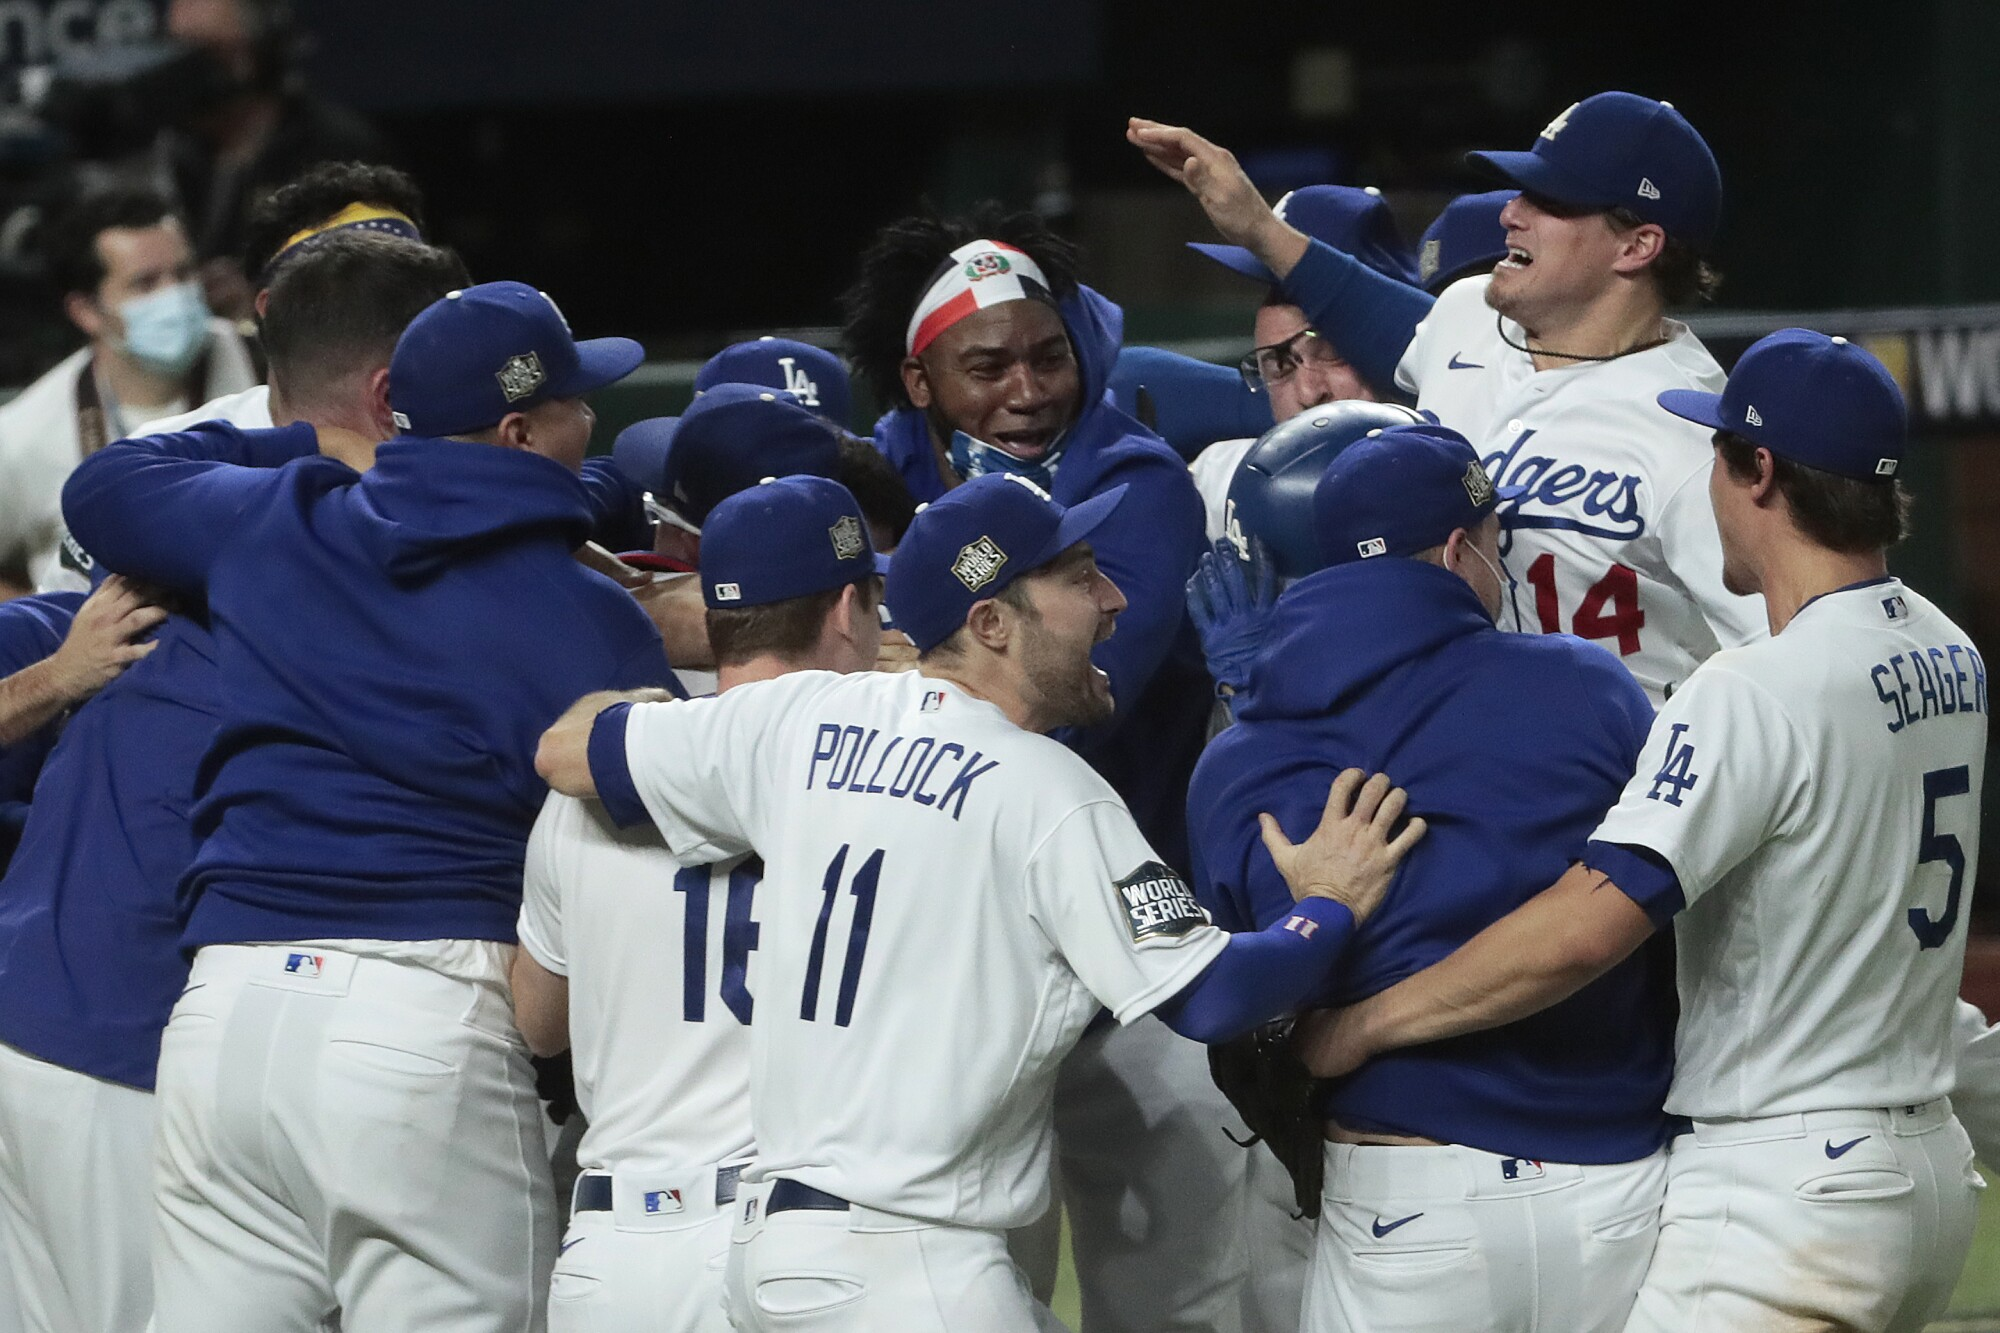 Dodgers players celebrate their World Series championship after defeating the Tampa Bay Rays.